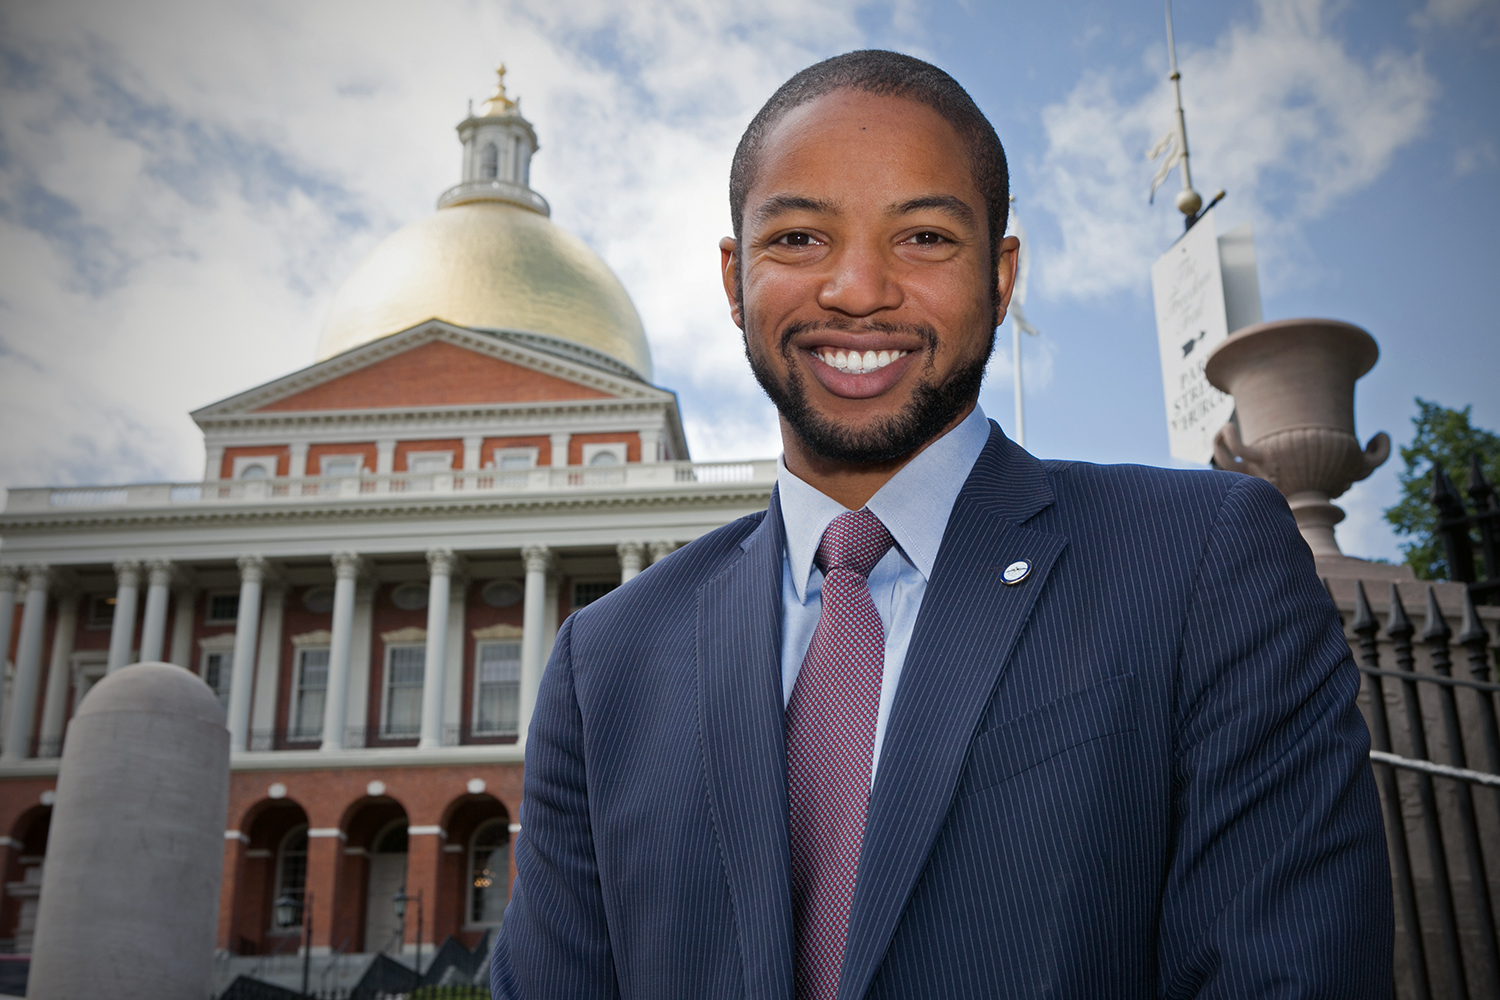 Austin Blackmon, chief of Environment, Energy and Open Space for the city of Boston, stands in front of the Massachusetts State House on June 9, 2016 in Boston. (Photo by Lauren Owens Lambert/GroundTruth)